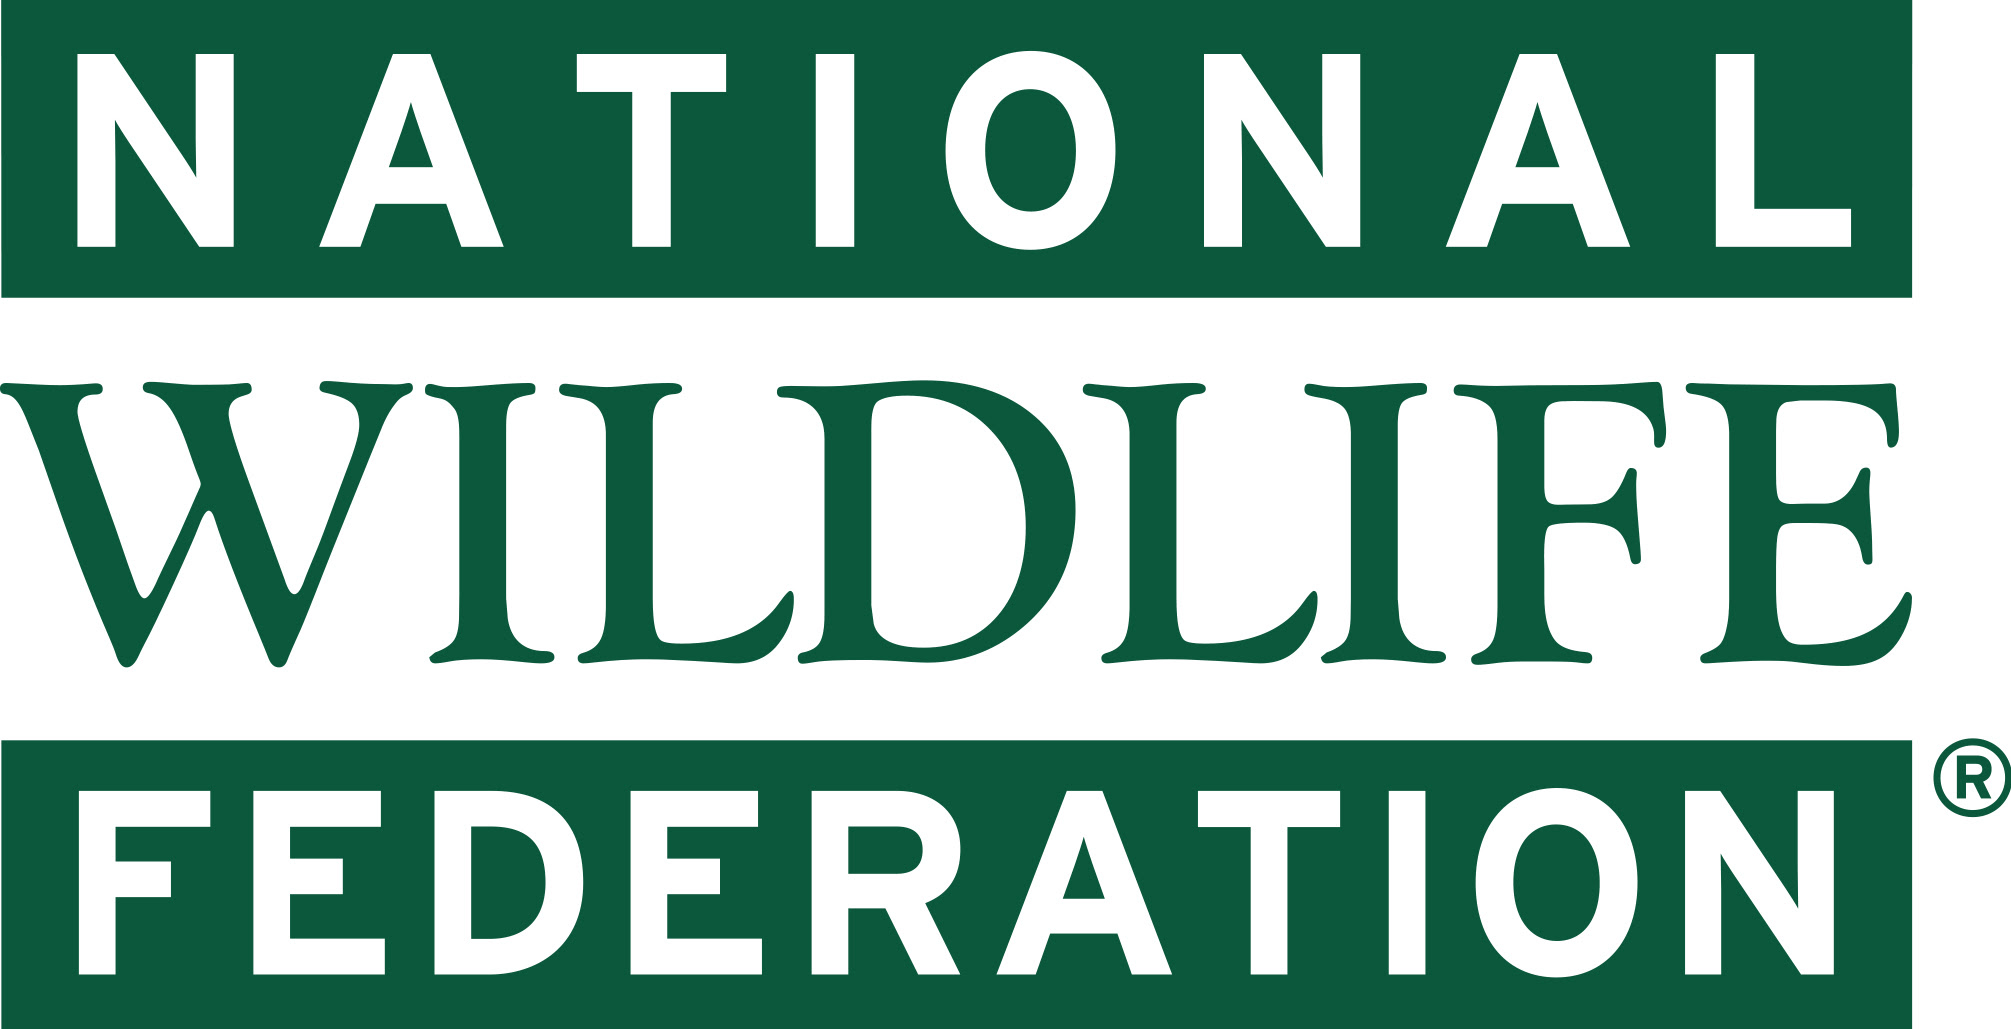 the national wildlife federation You searched for: national wildlife federation etsy is the home to thousands of handmade, vintage, and one-of-a-kind products and gifts related to your search no.